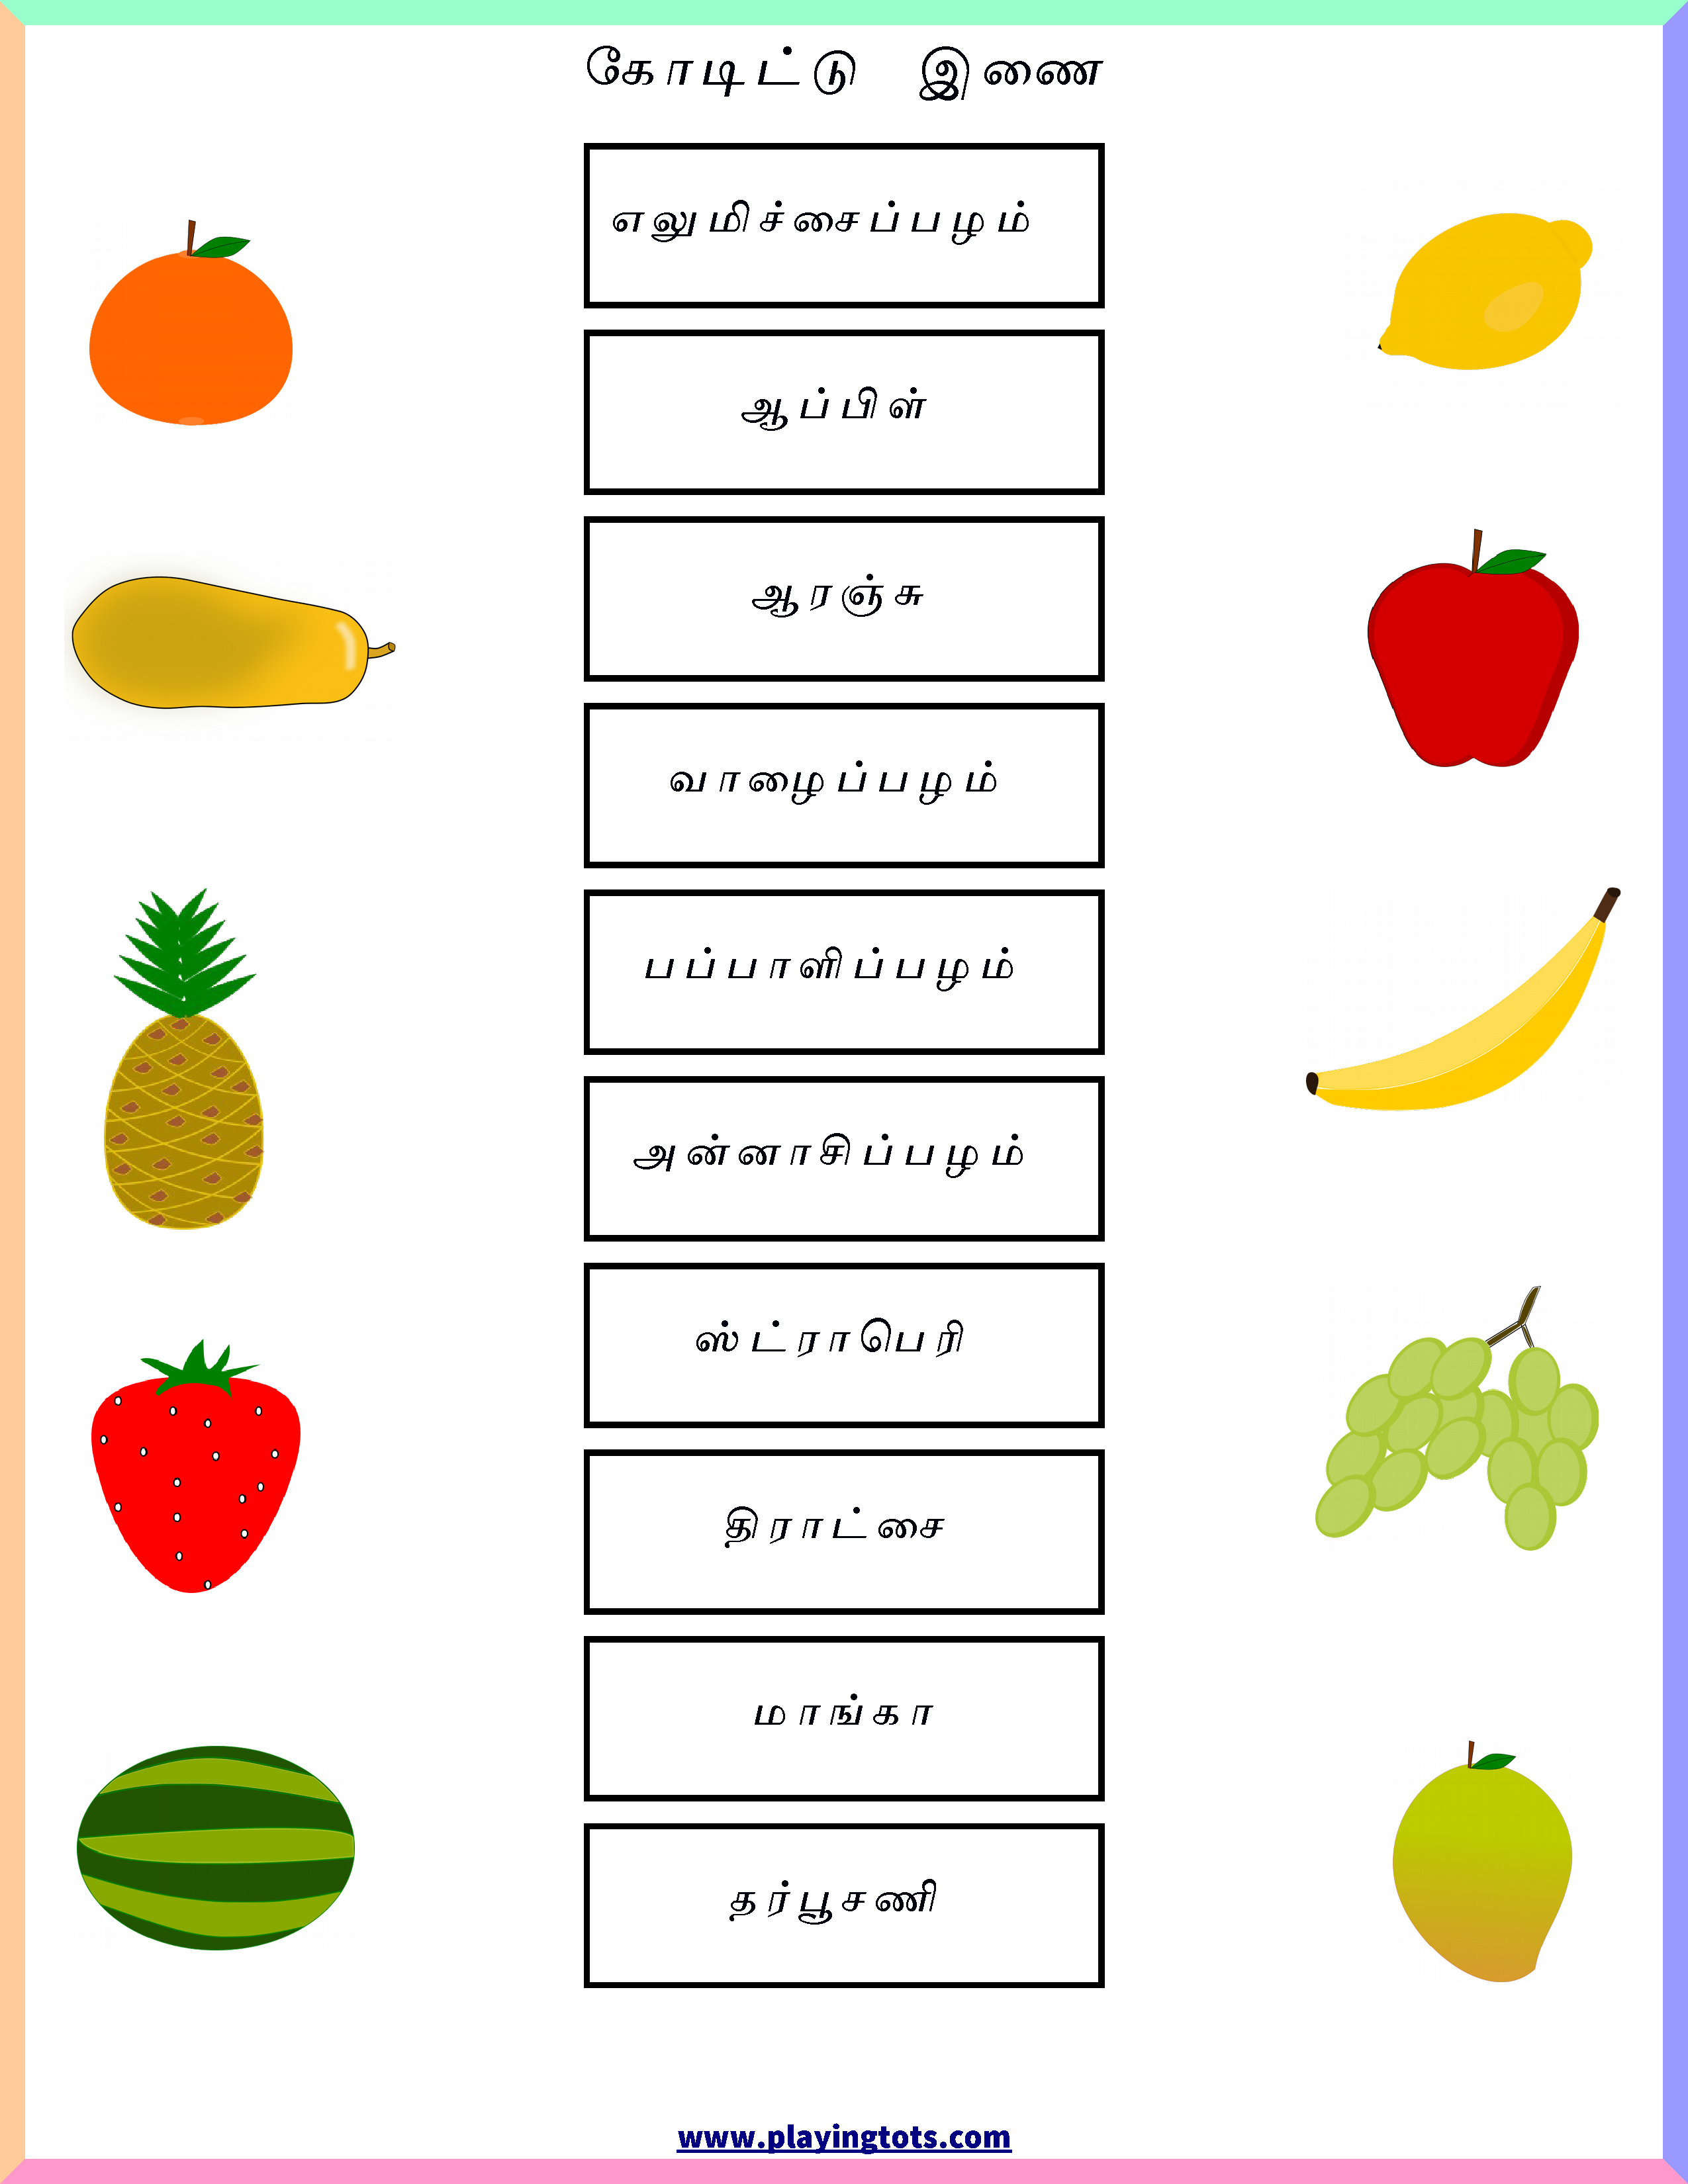 Pin by Playingtots on Free Printable to Teach Tamil to kids ...